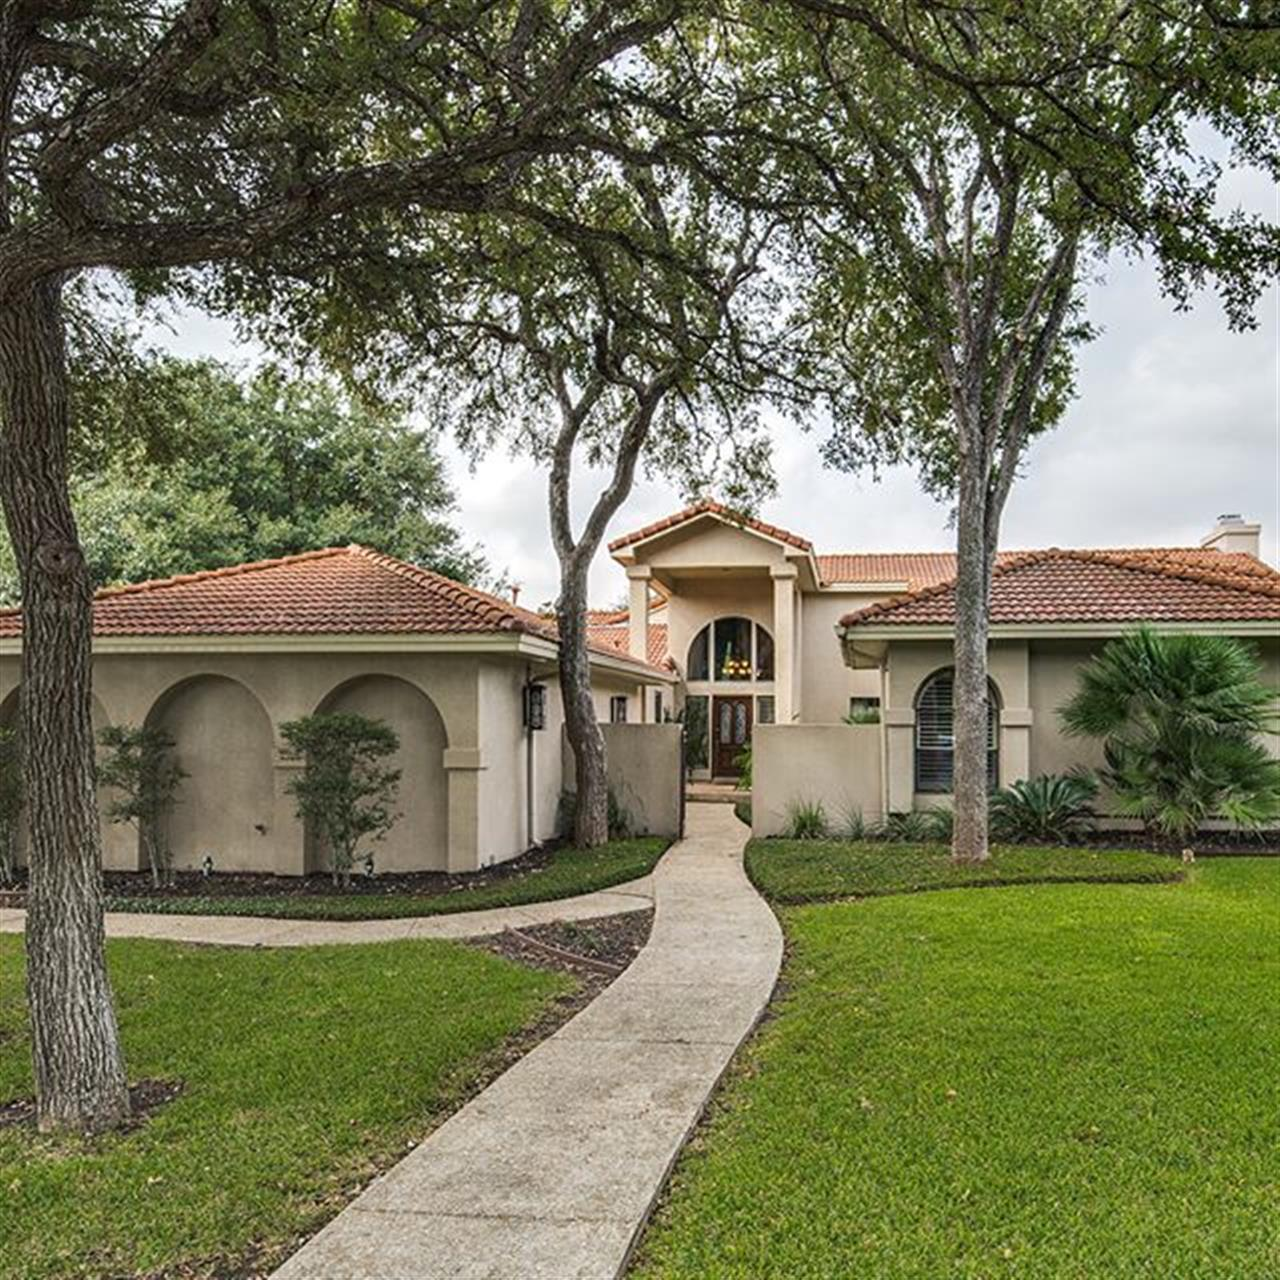 Luxury of the Day: 14003 Bluff Park Dr. listed by @dalrymple.judy in #BluffviewEstates. Accessed through a gated courtyard, this wonderful single story features hardwood floors, plantation shutters and soaring ceilings.